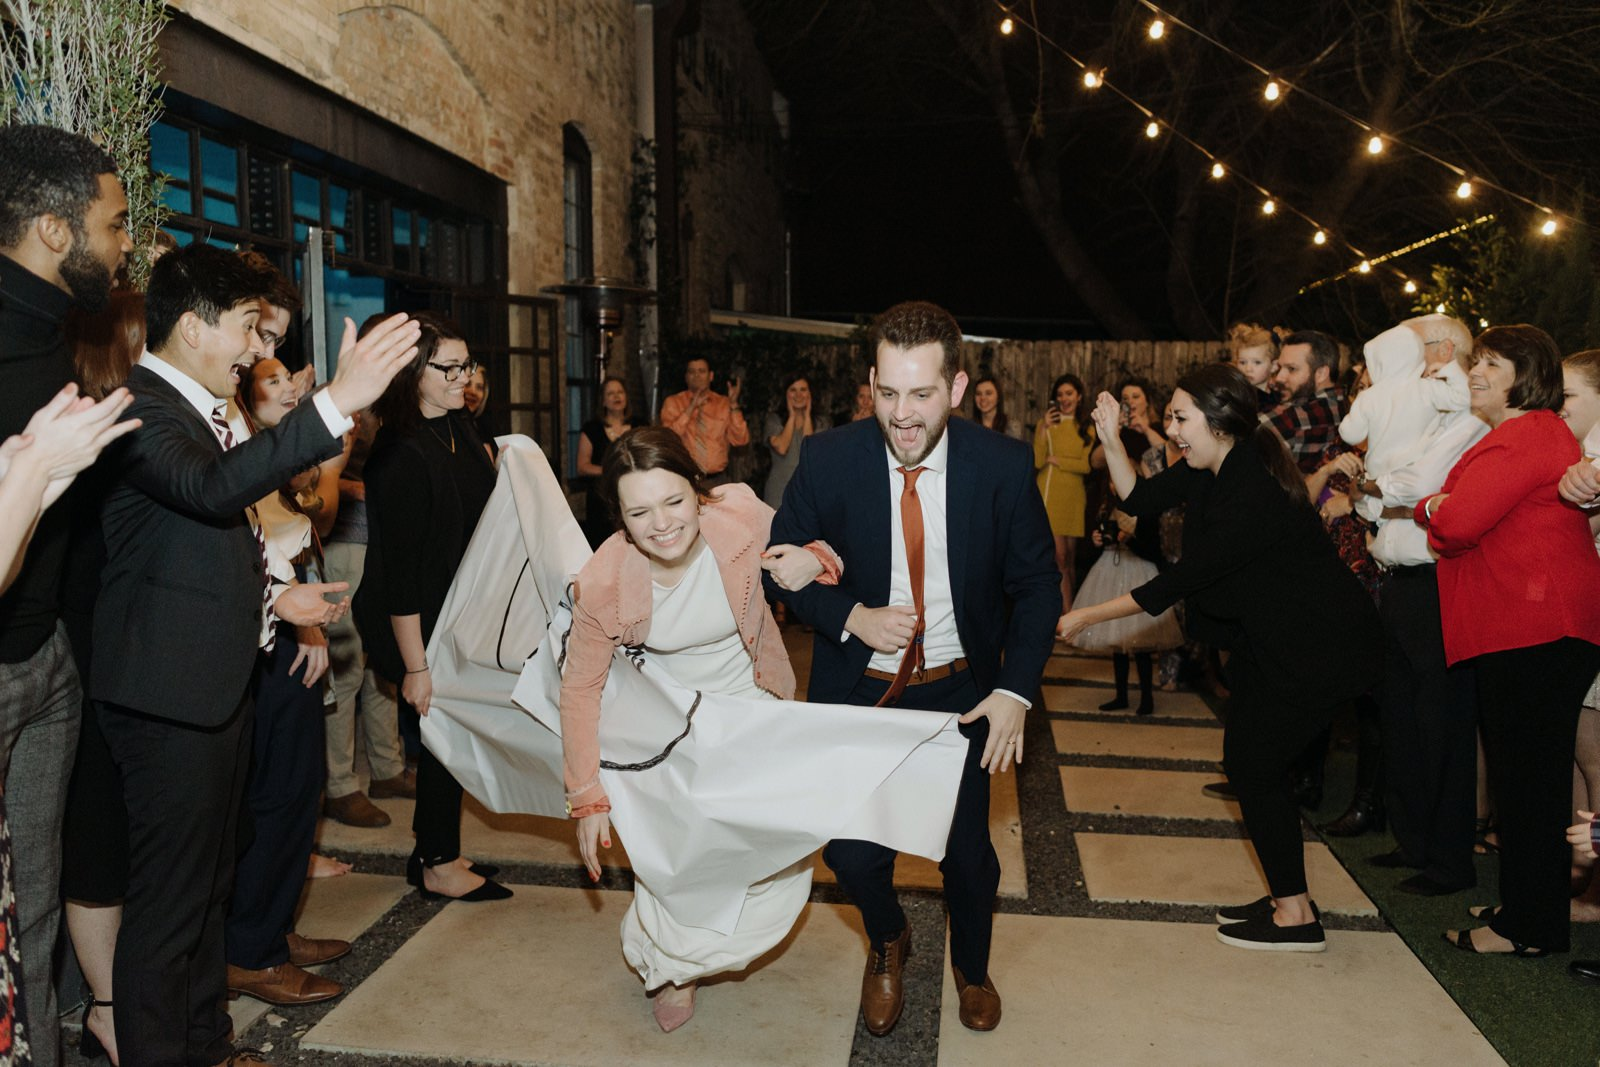 Wedding couple's exit in the coutyard of One Eleven East with celebratory banner